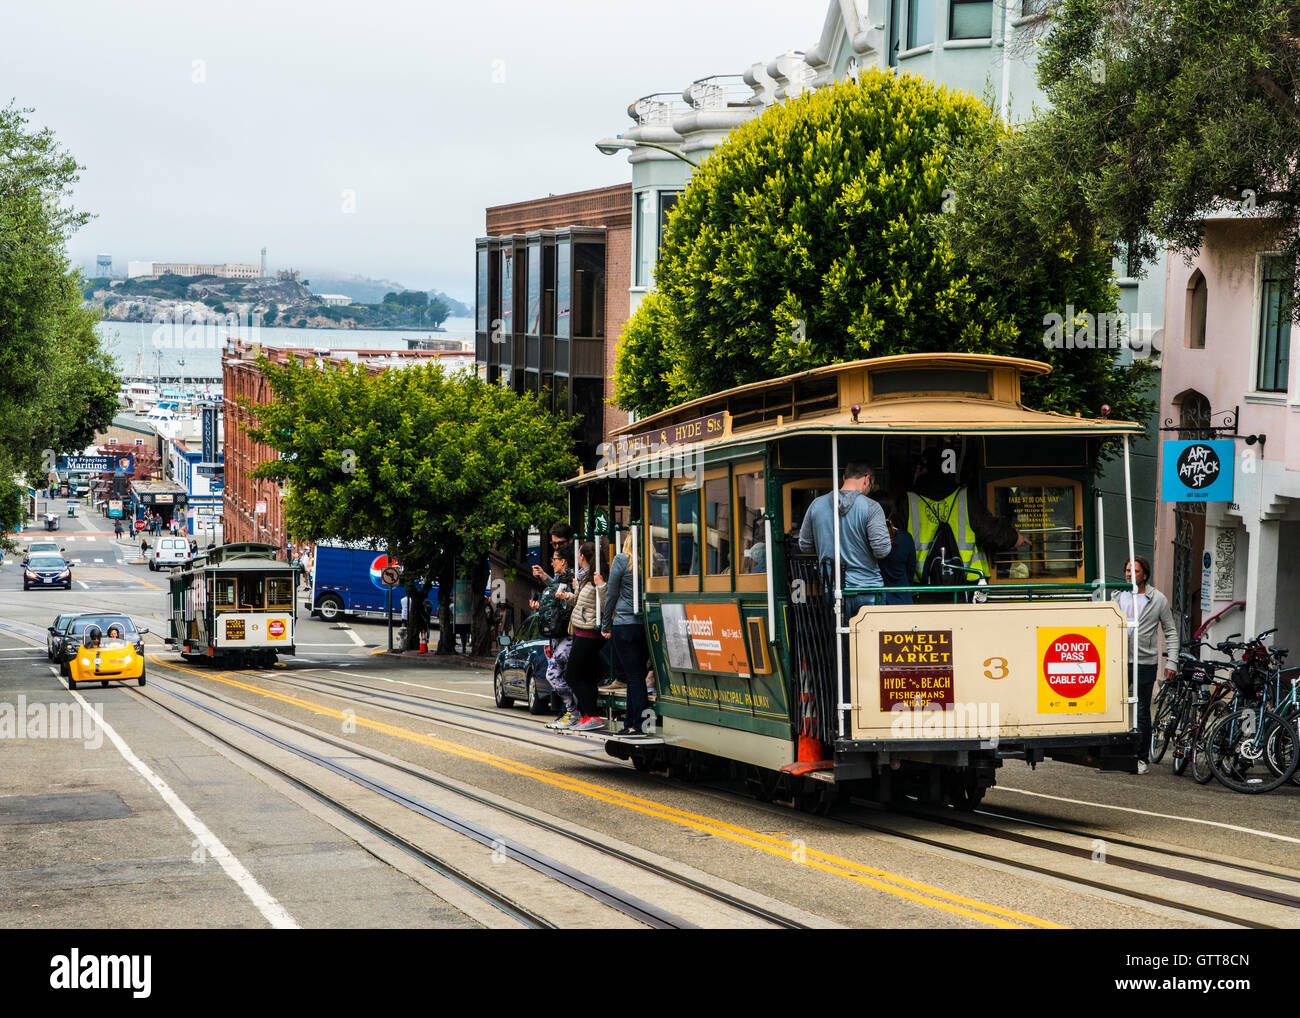 San Francisco cable car on Hyde street with Alcatraz in background - Stock Image